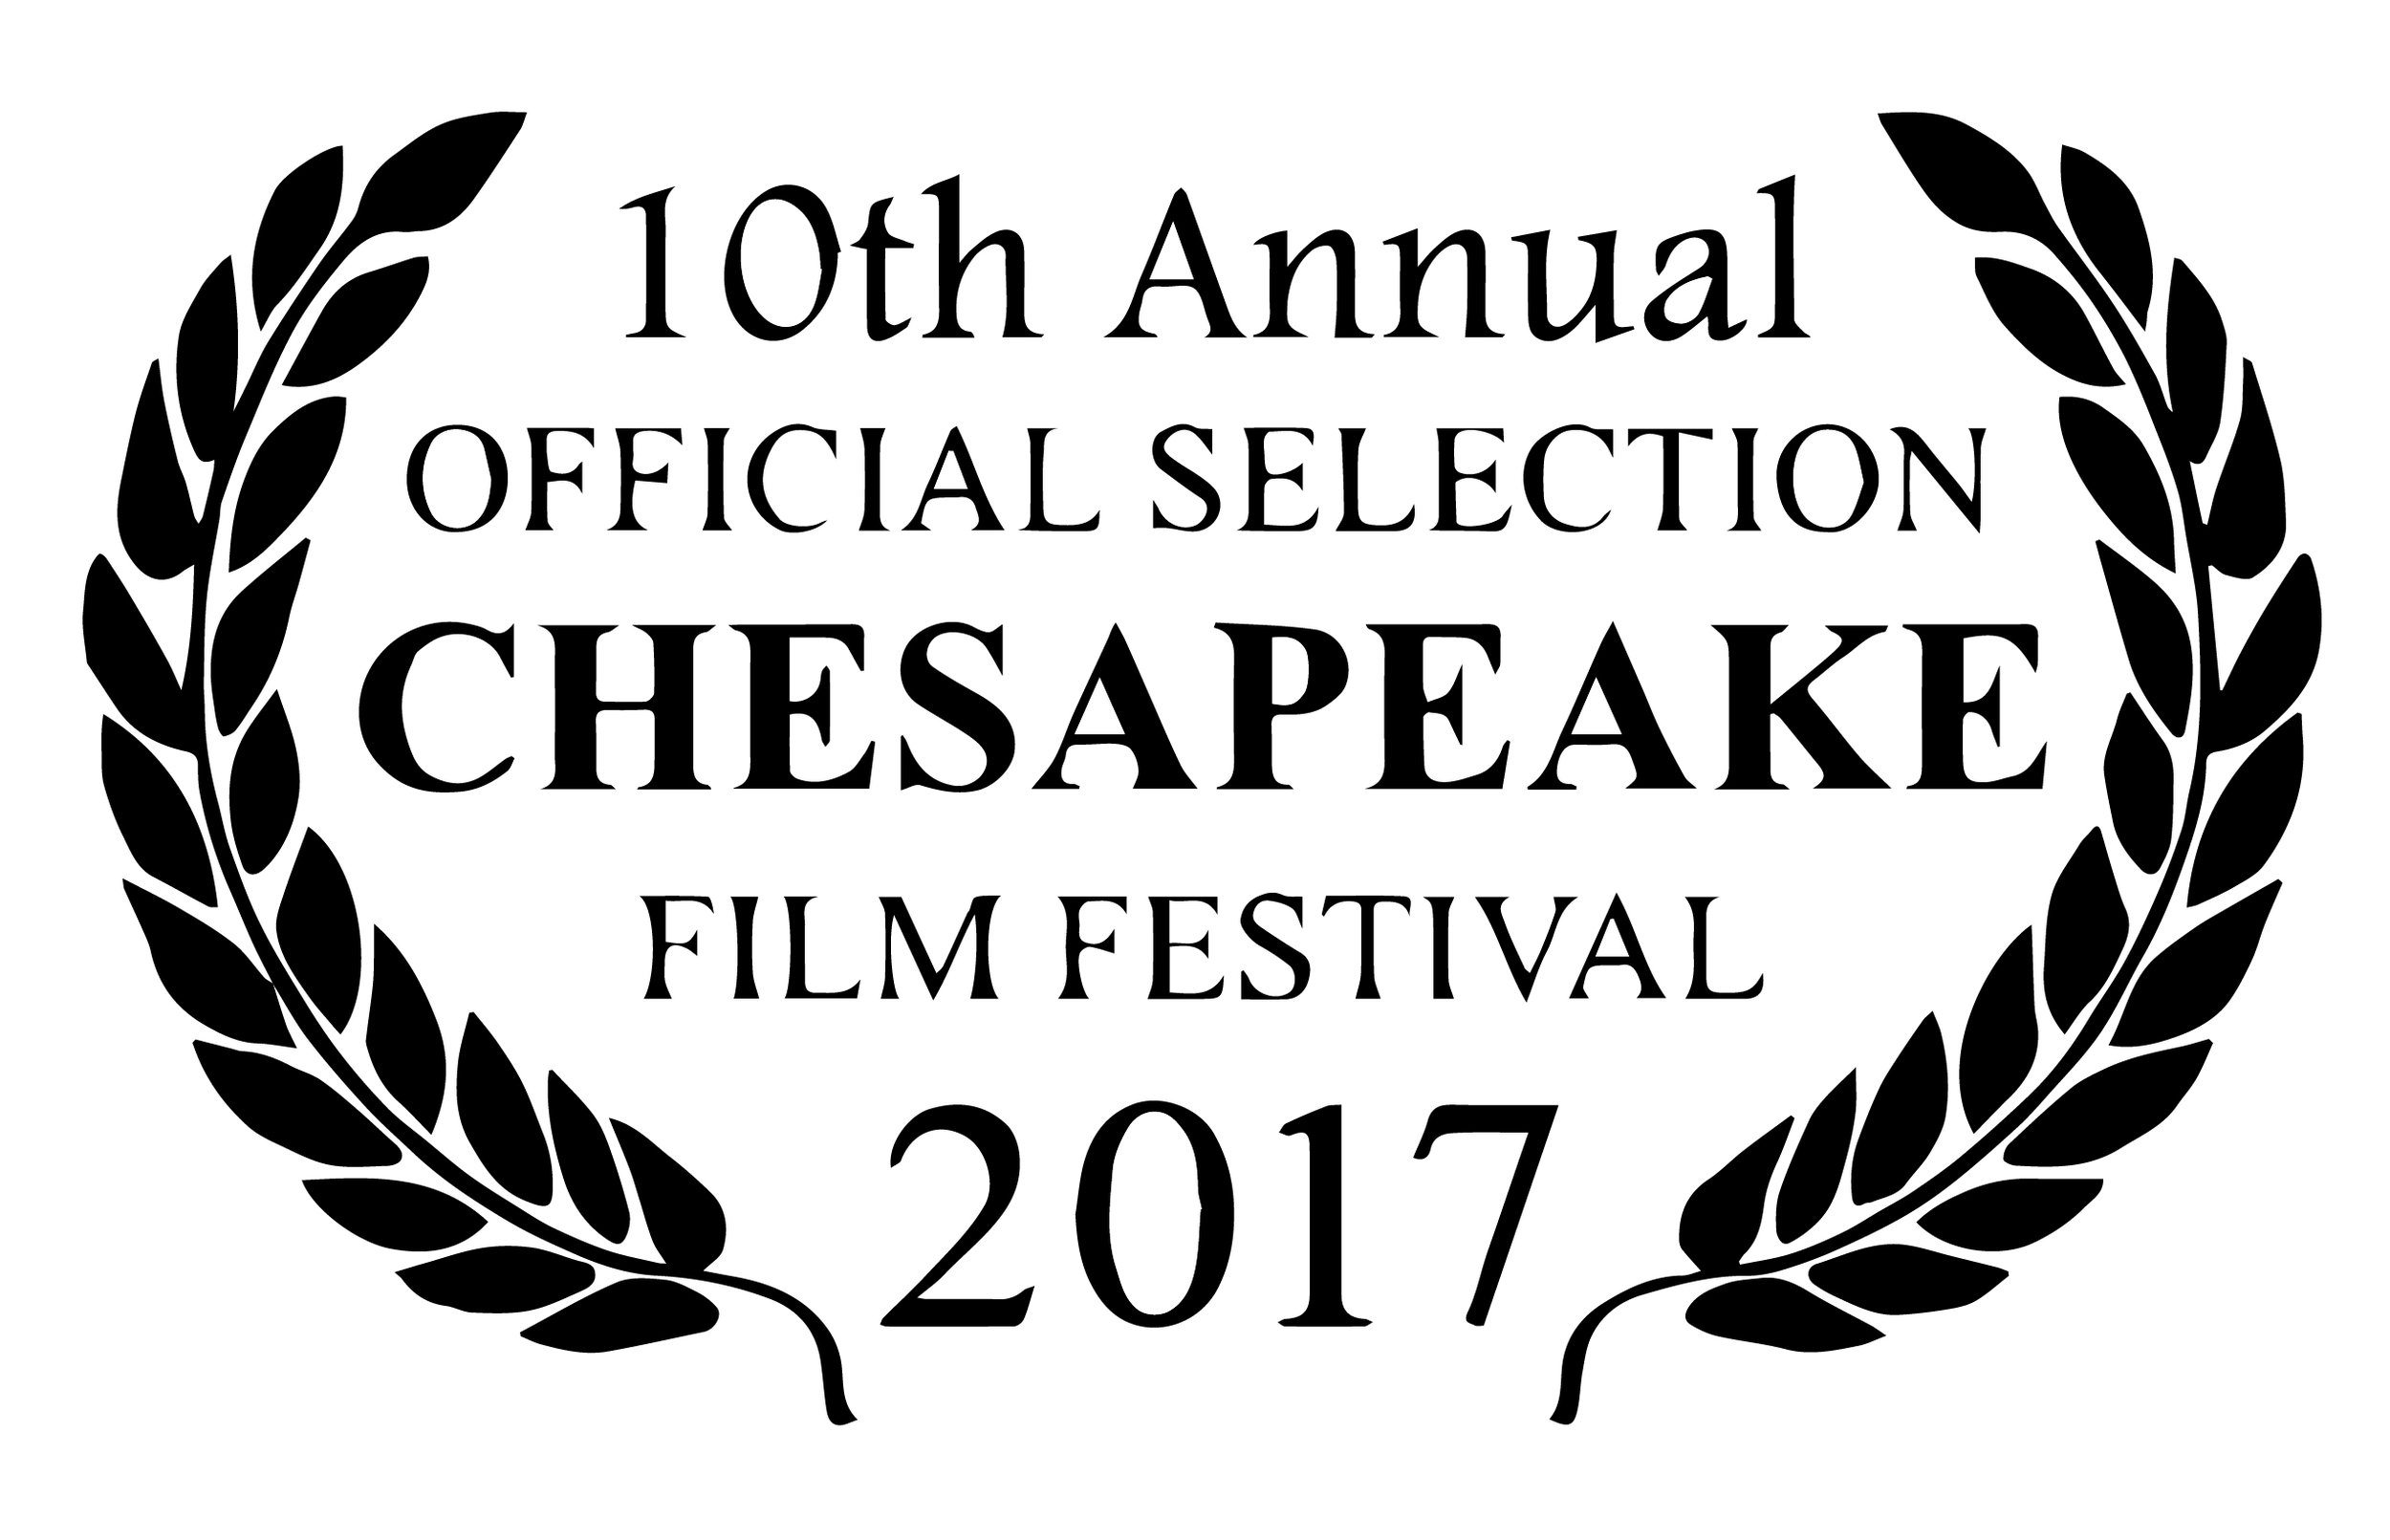 Best Environmental Feature Film, 2017 - Awarded at the Chesapeake Film Festival for the film OYSTER